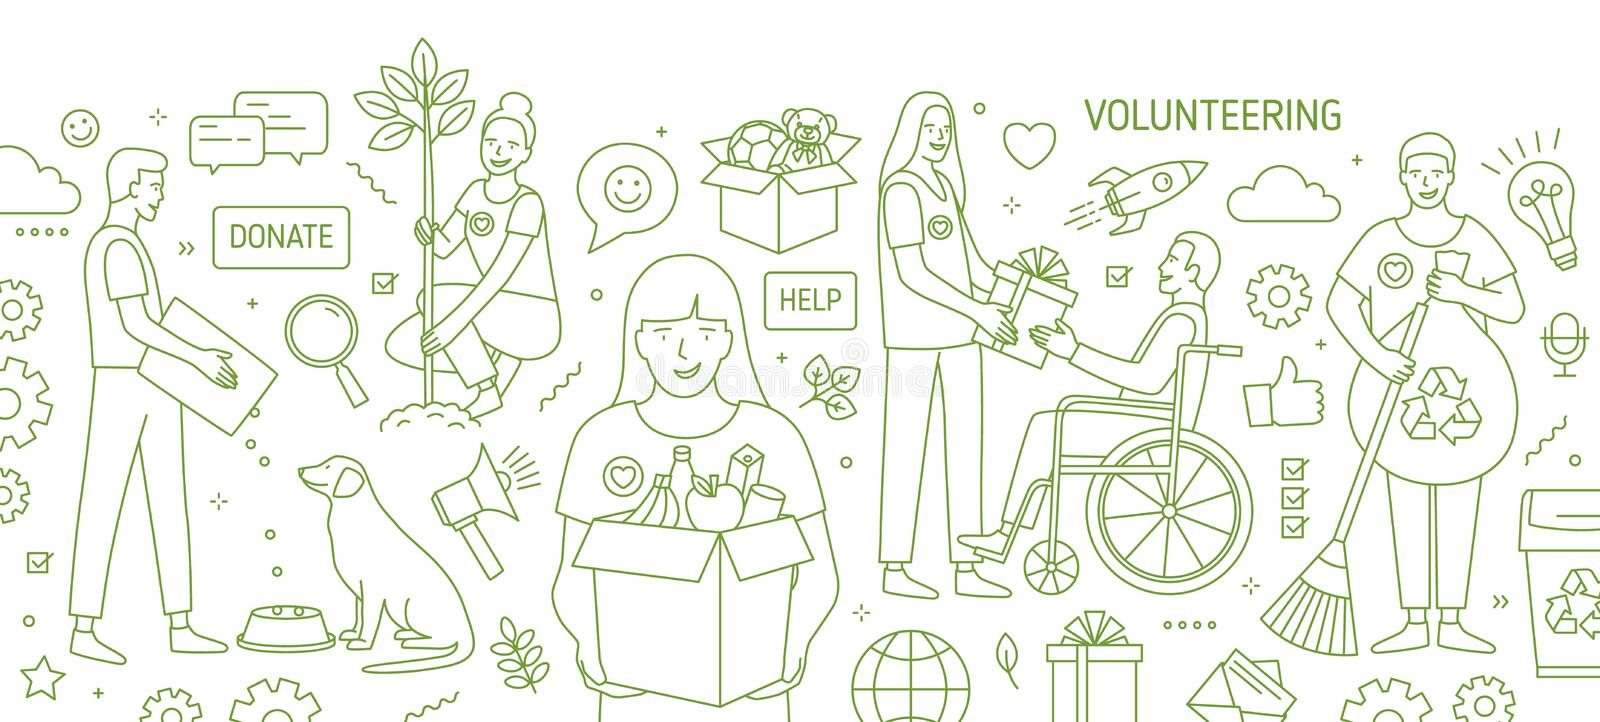 Horizontal banner with smiling young men and women volunteering or doing volunteer work drawn with green contour lines vector illustration